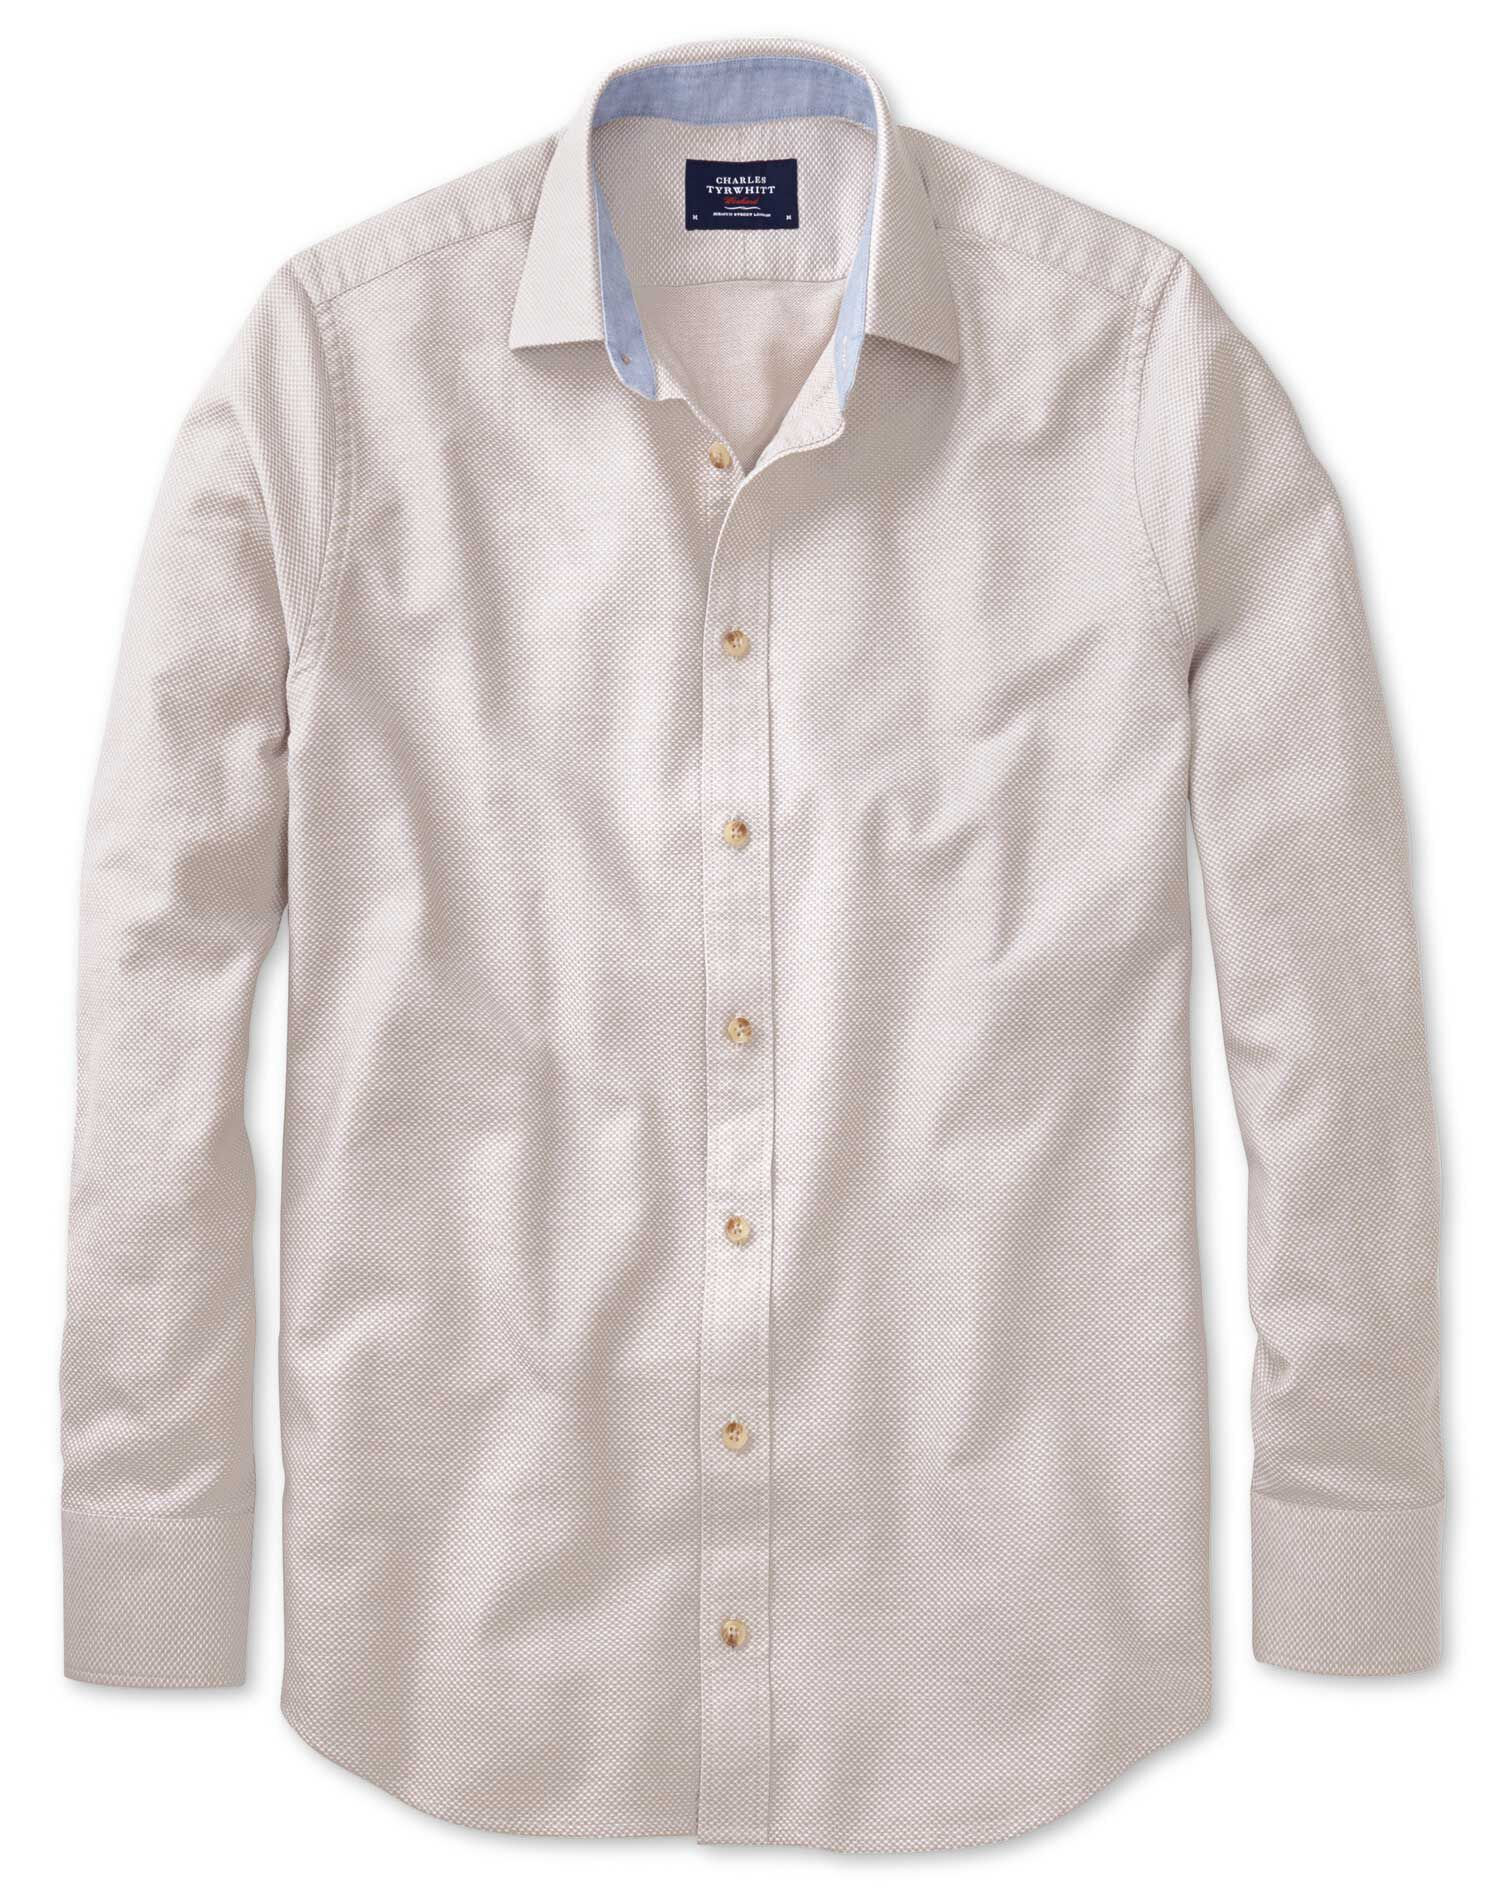 Classic Fit Stone Washed Textured Cotton Shirt Single Cuff Size XXXL by Charles Tyrwhitt